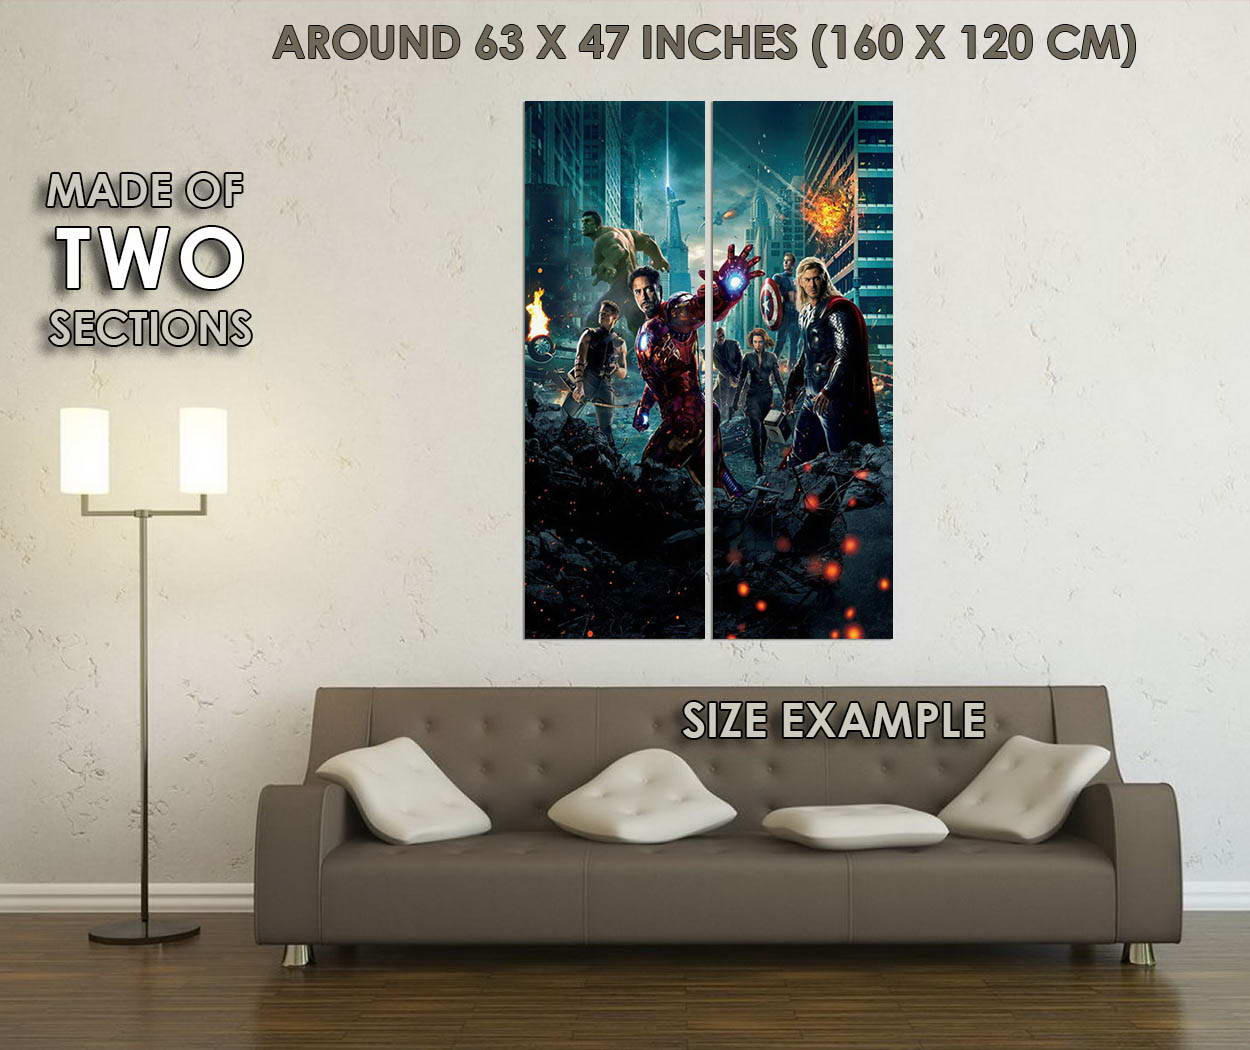 10273-Avengers-Age-of-Ultron-Movie-Art-LAMINATED-POSTER-CA thumbnail 6